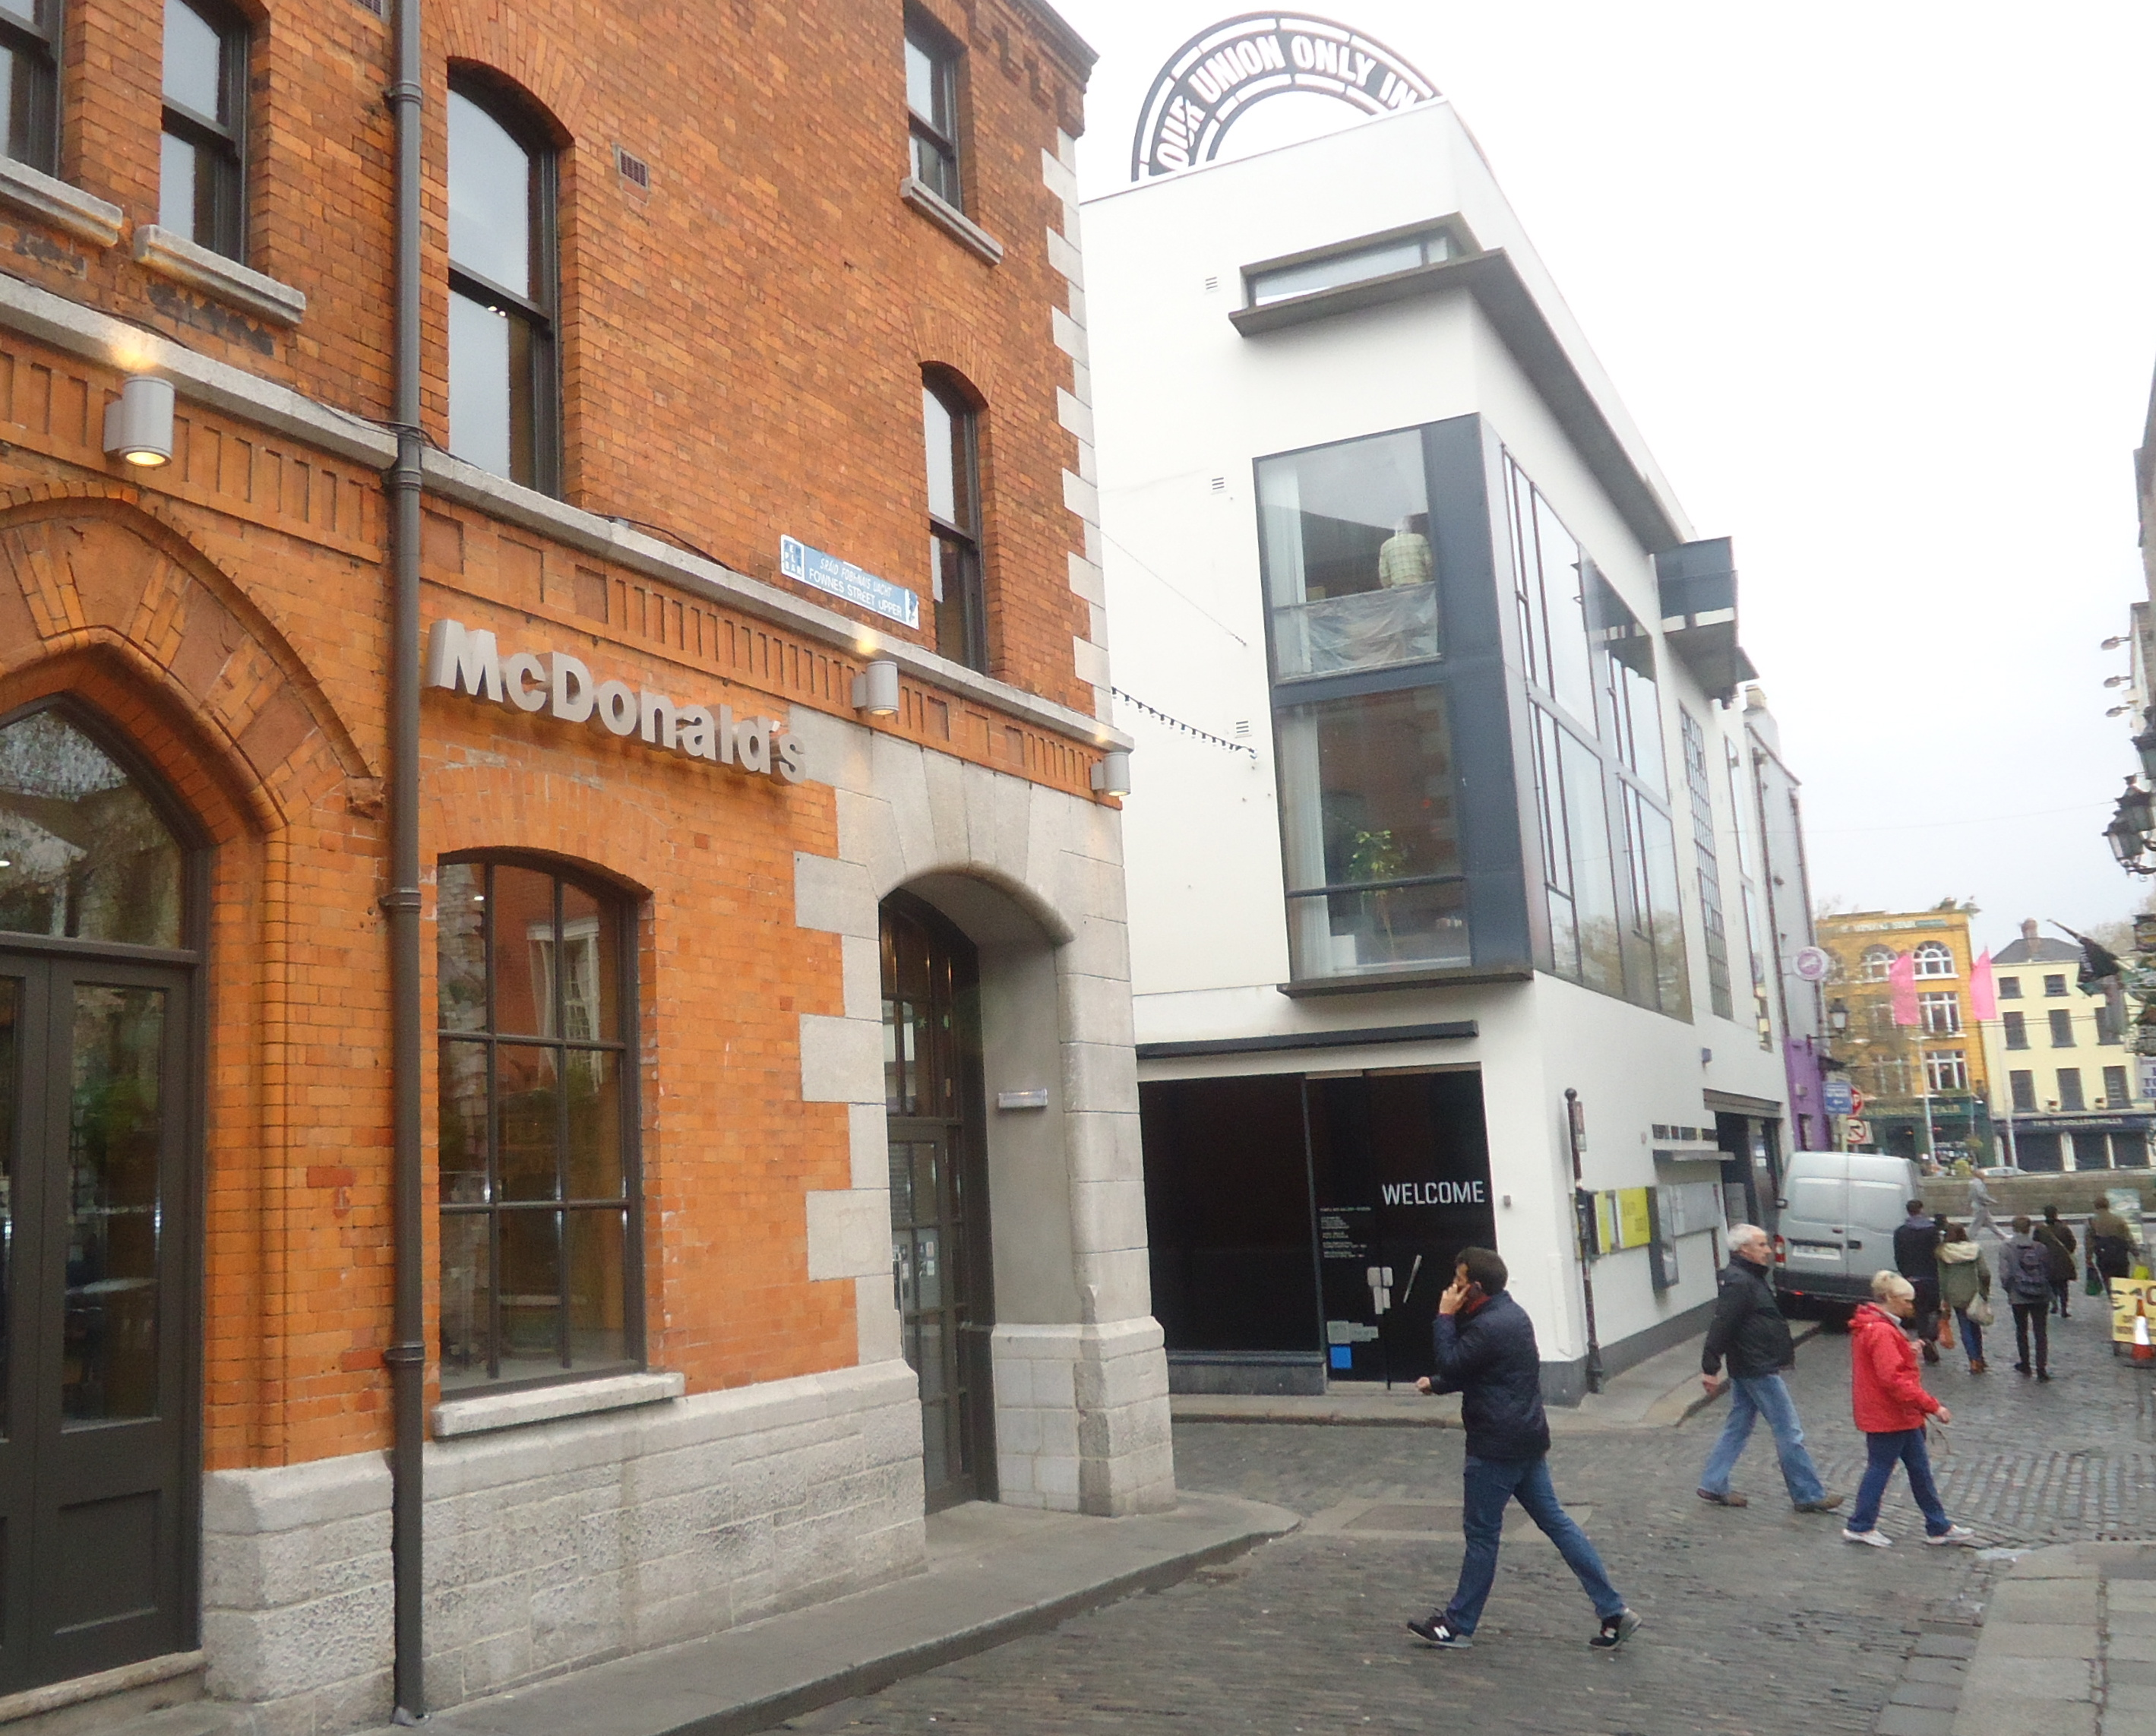 McDonald's Temple Bar in Dublin, Ireland